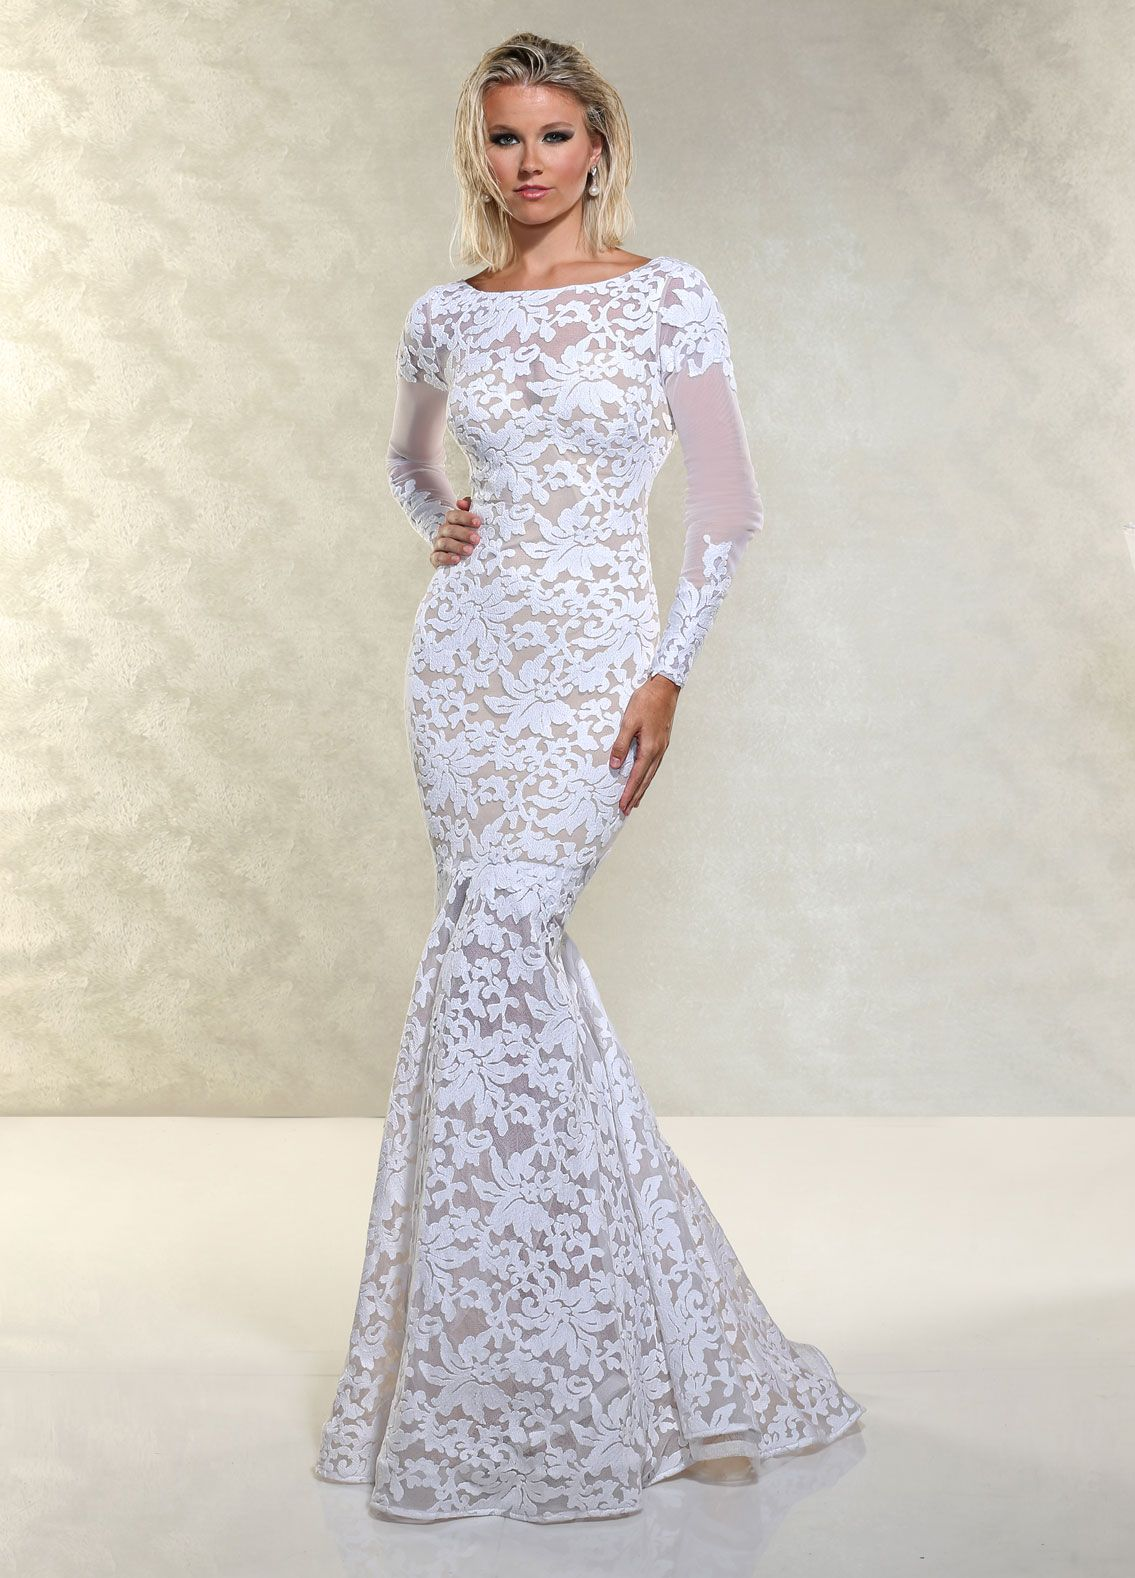 32550 White size 6 | Xcite/ Xtreme/ Disney Enchanted gowns in stock ...